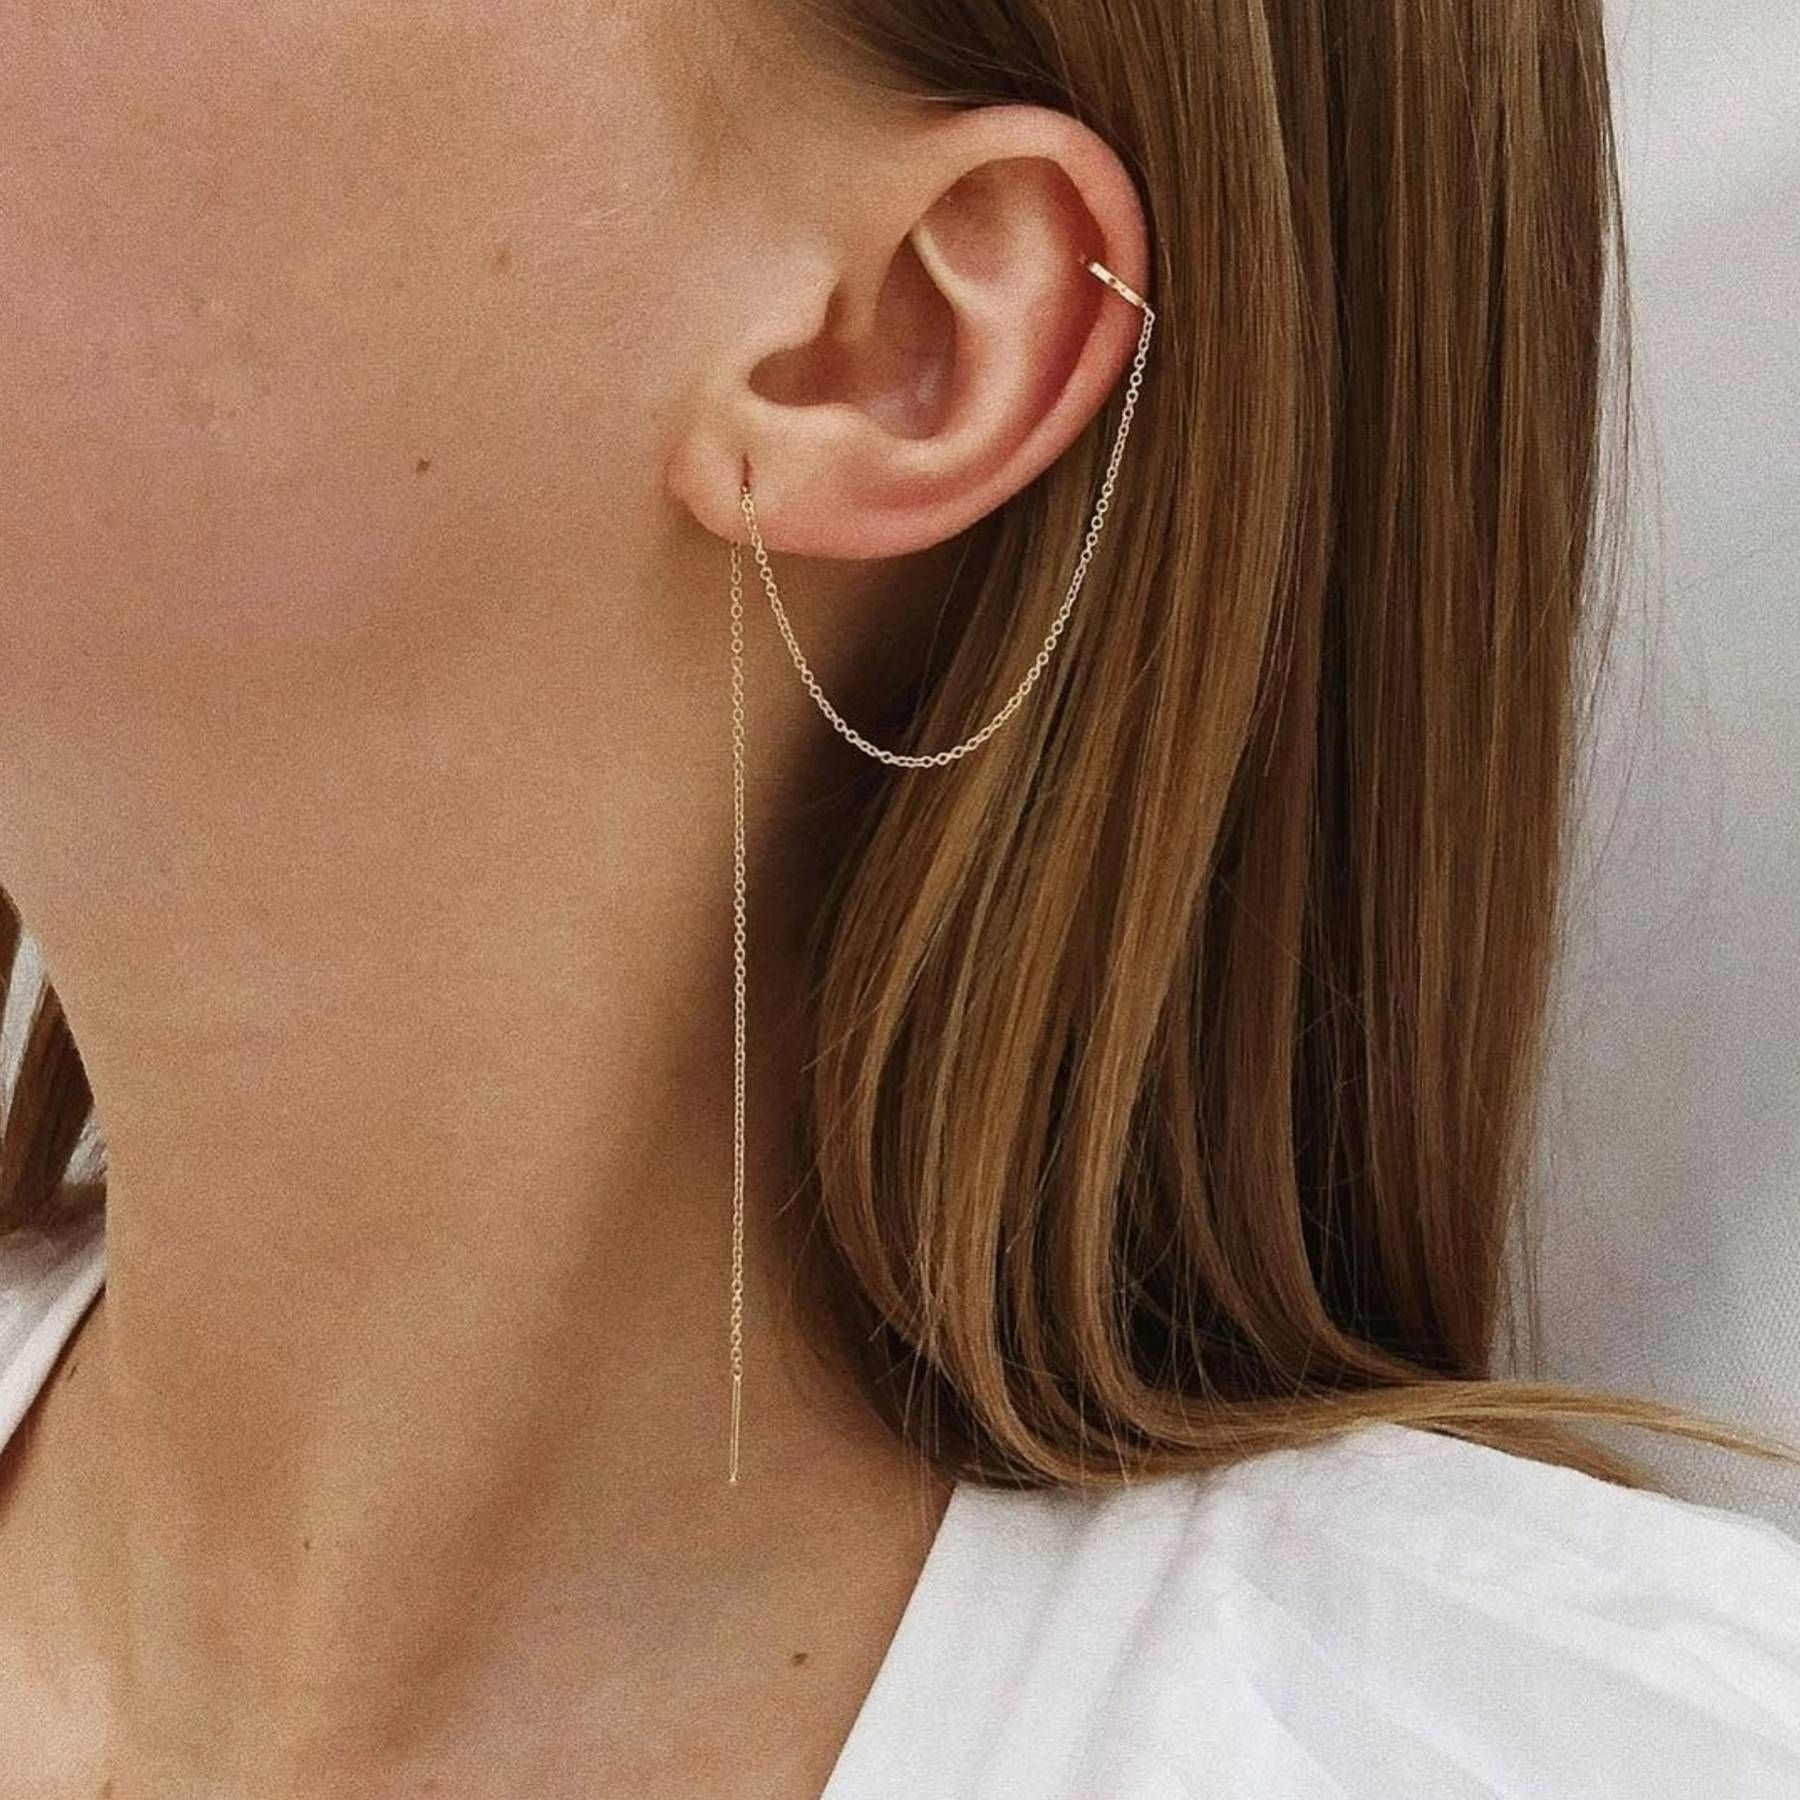 Wondering Where To Get Your Next Ear Piercing These Are